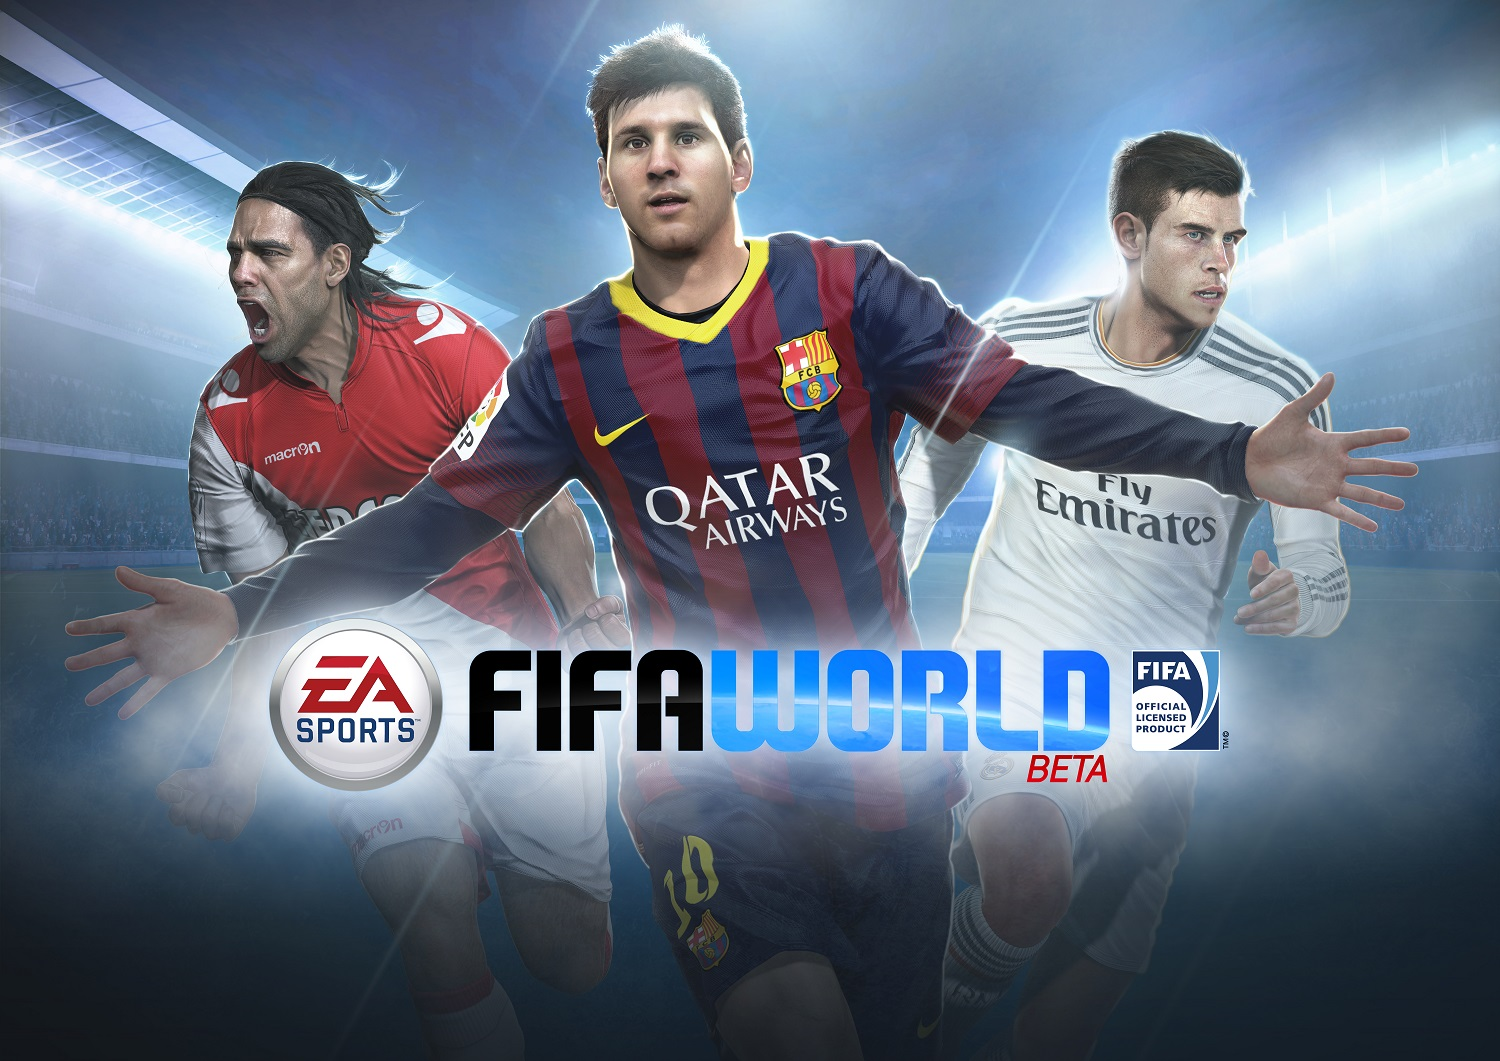 Box art - EA SPORTS FIFA World